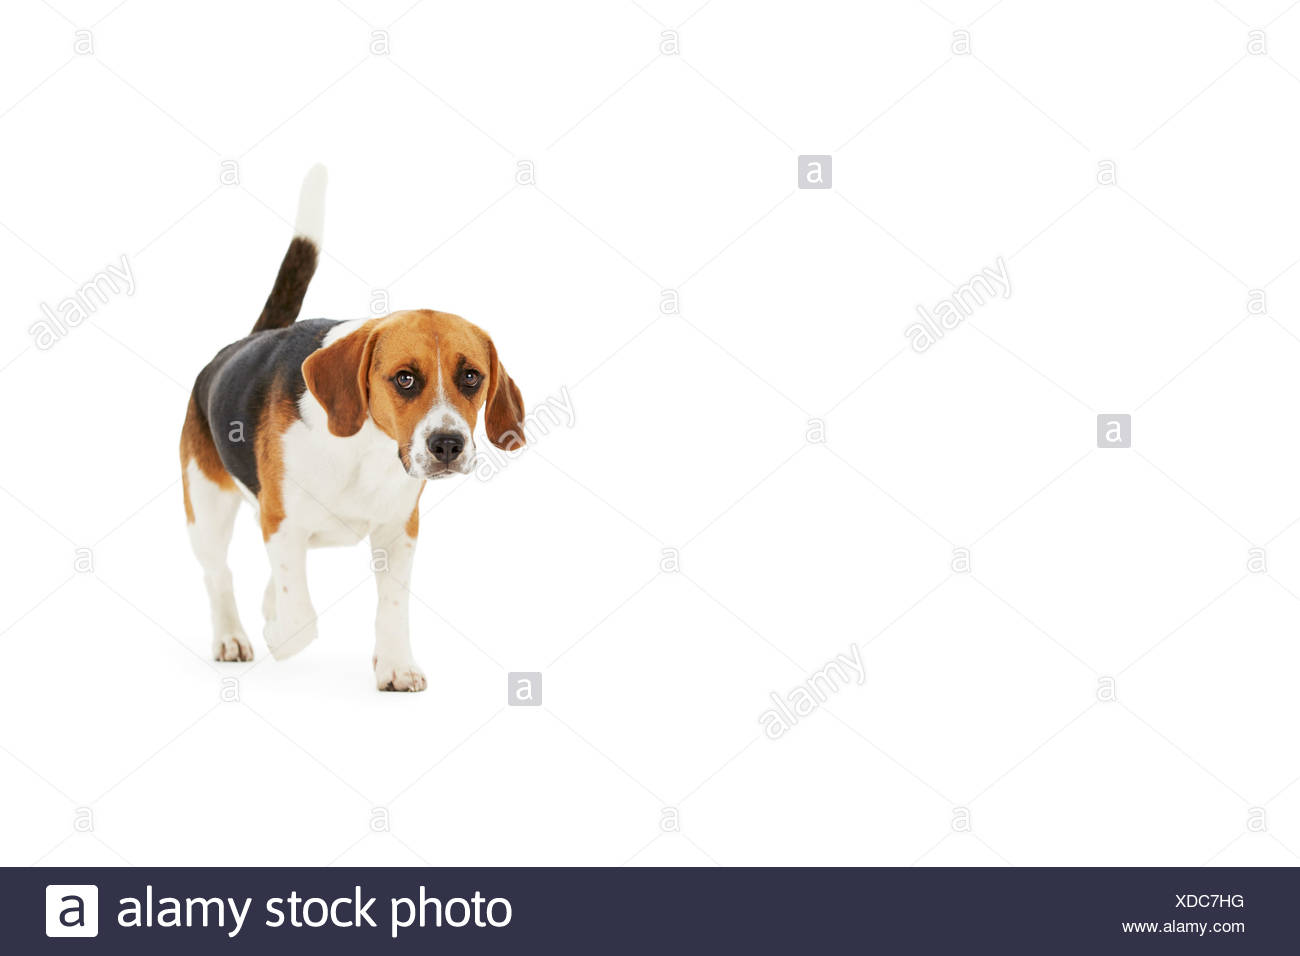 Studio Shot Of Beagle Dog Walking Against White Background - Stock Image